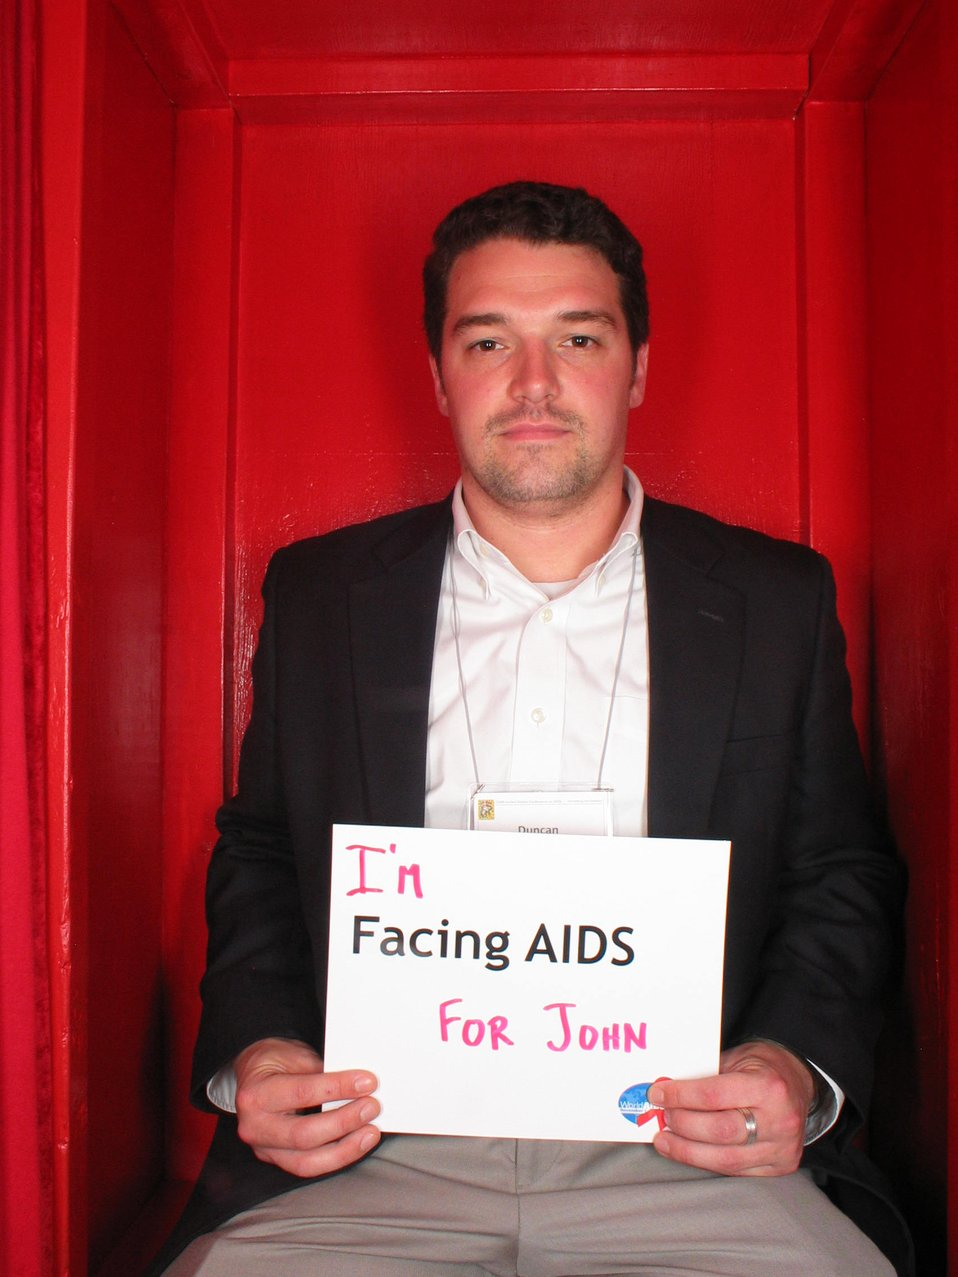 I'm Facing AIDS for John